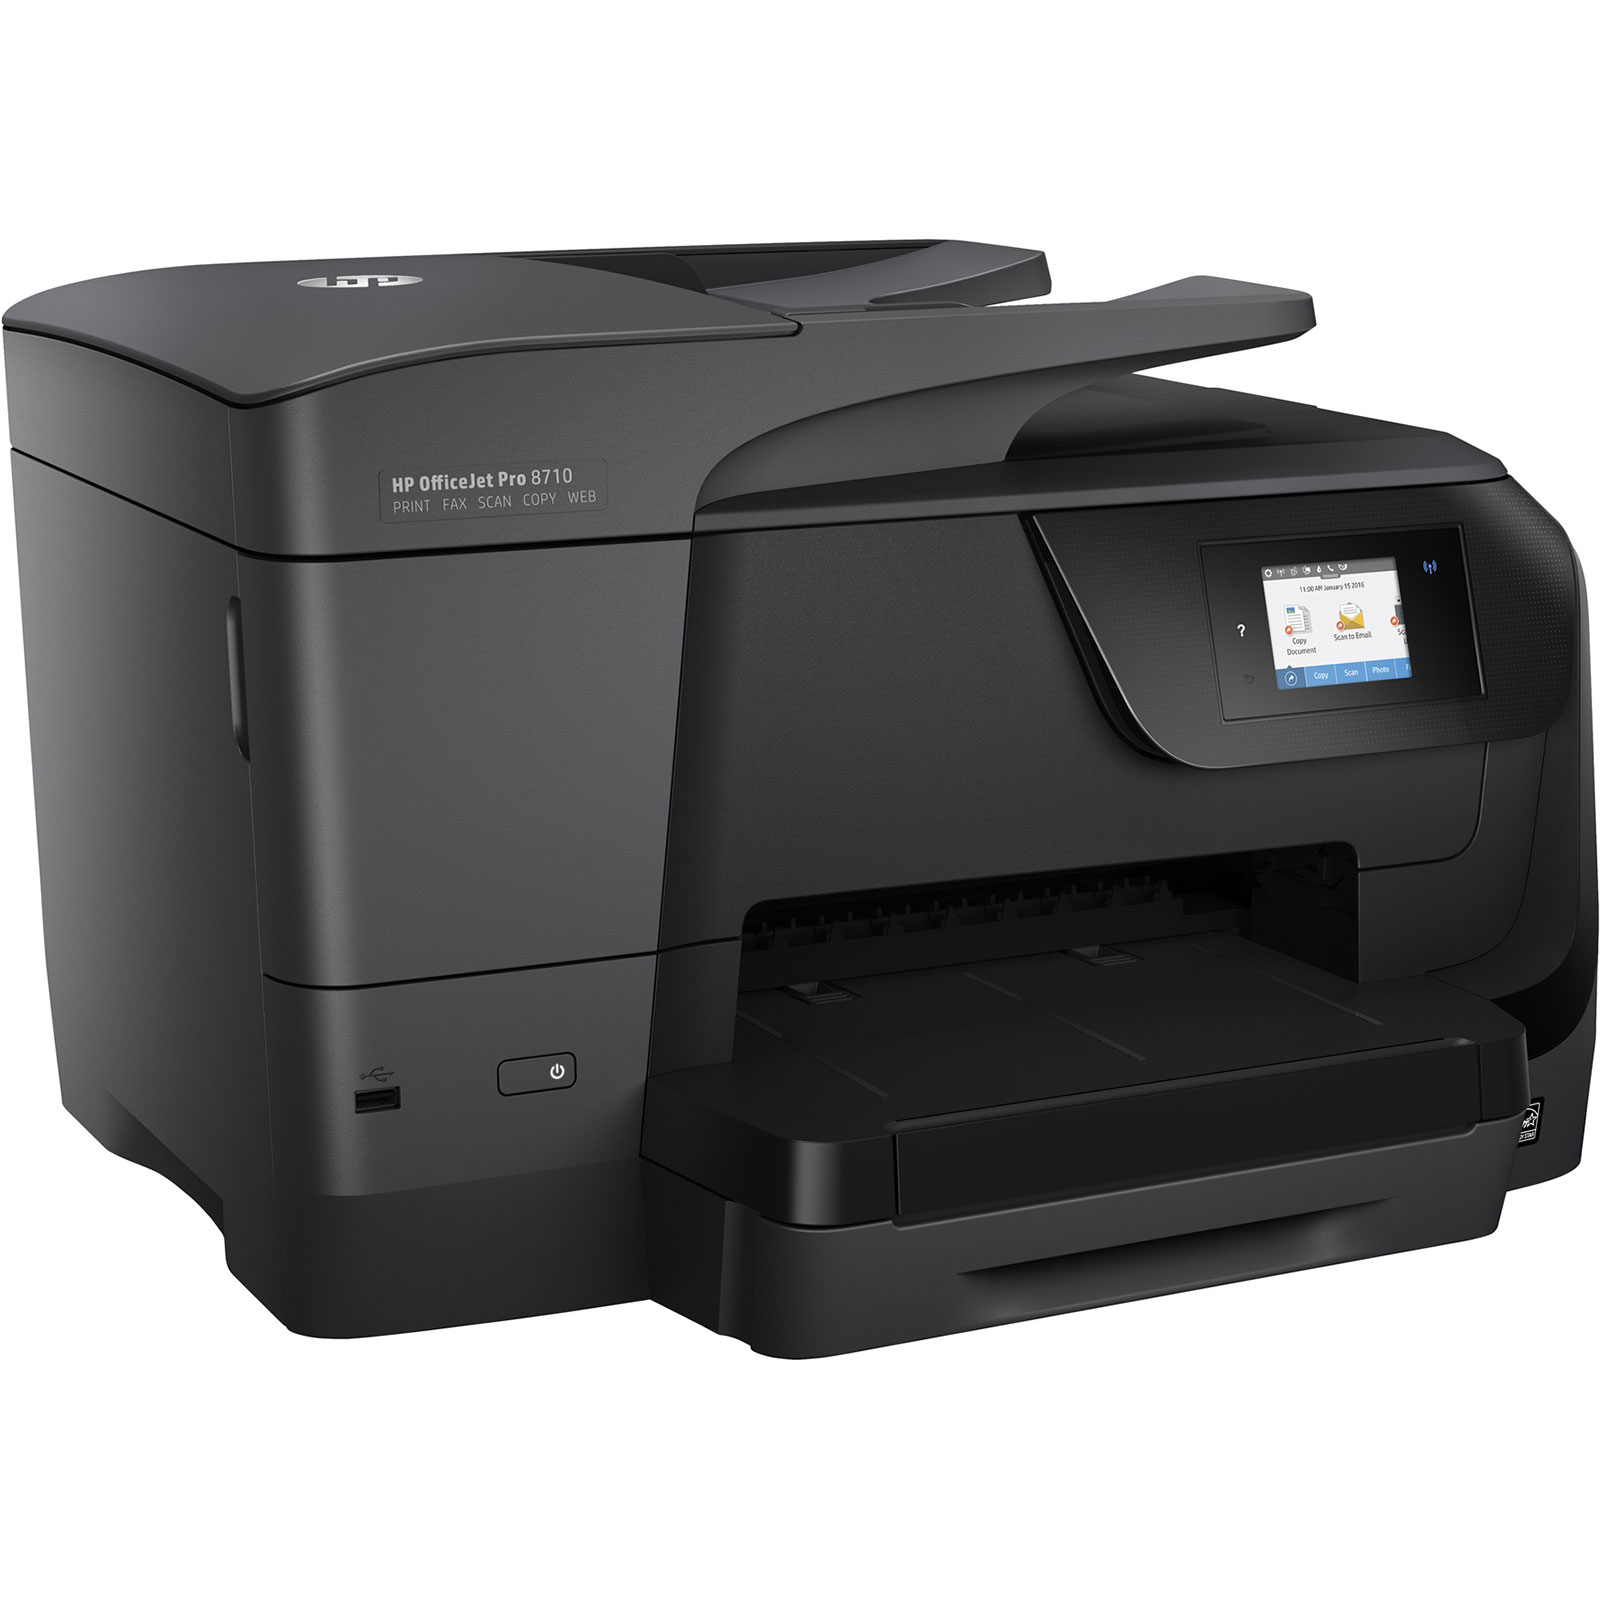 hp officejet pro 8710 imprimante multifonction hp sur ldlc. Black Bedroom Furniture Sets. Home Design Ideas